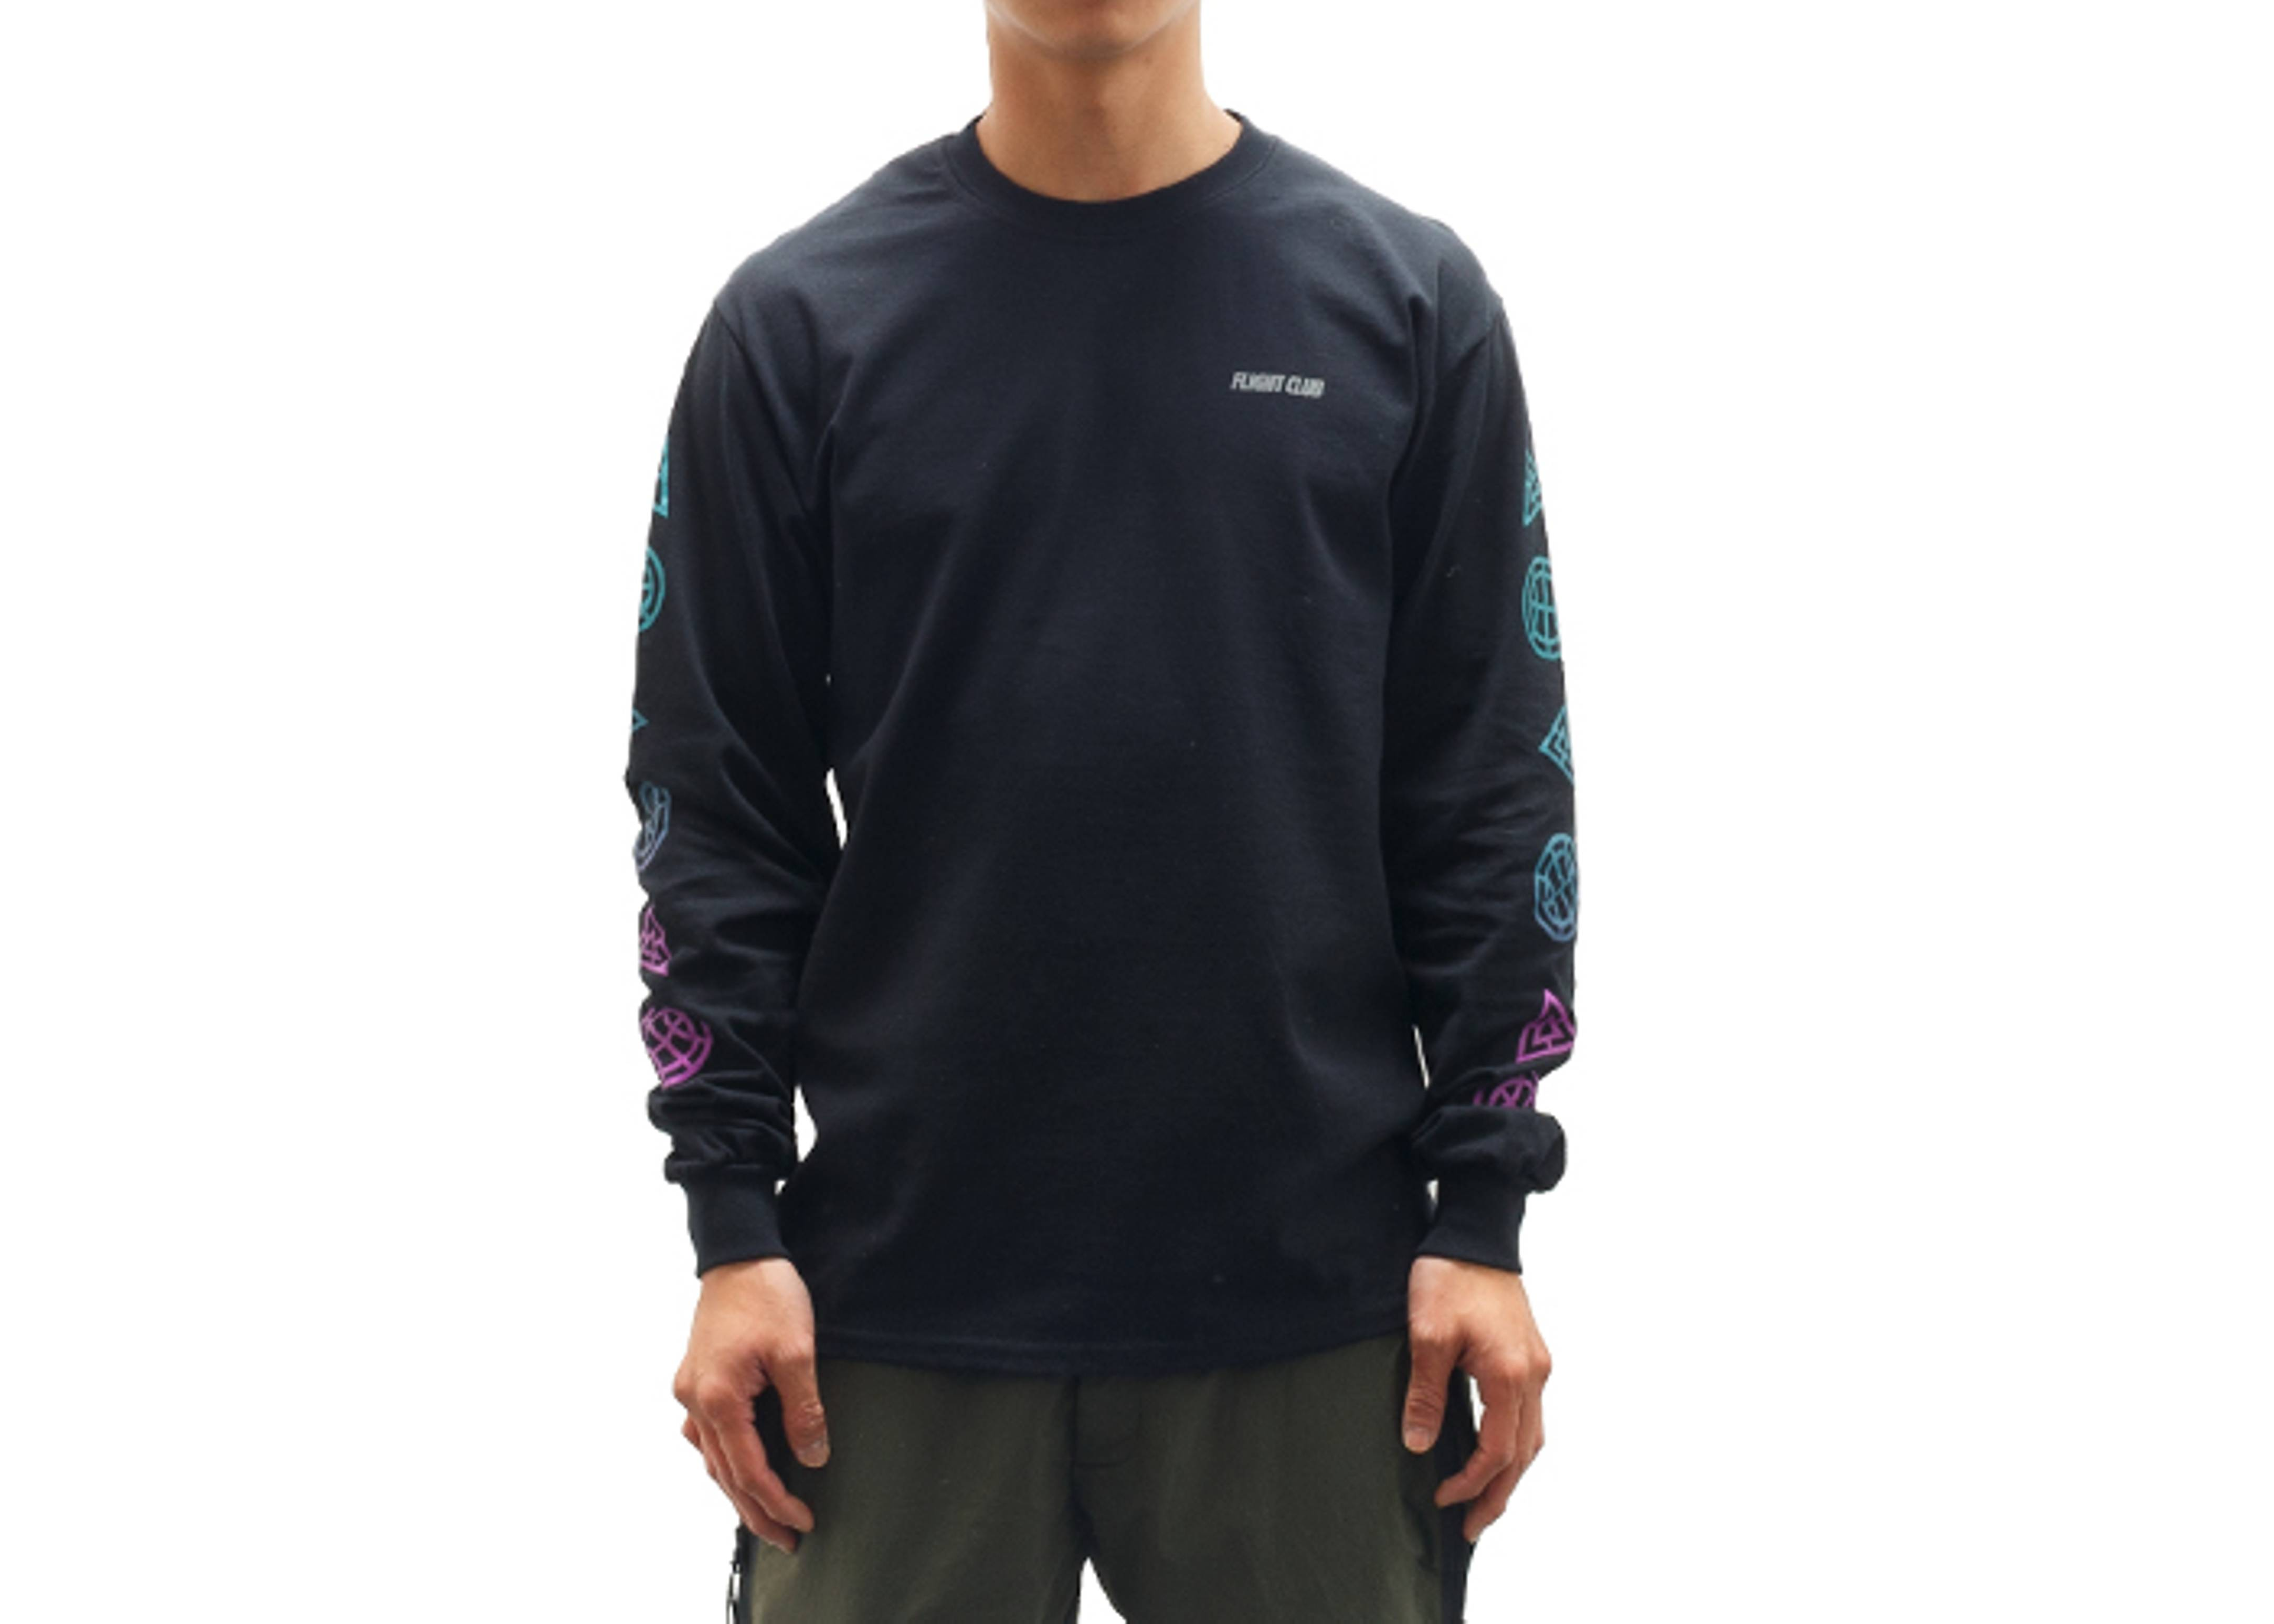 court vision long sleeve t-shirt